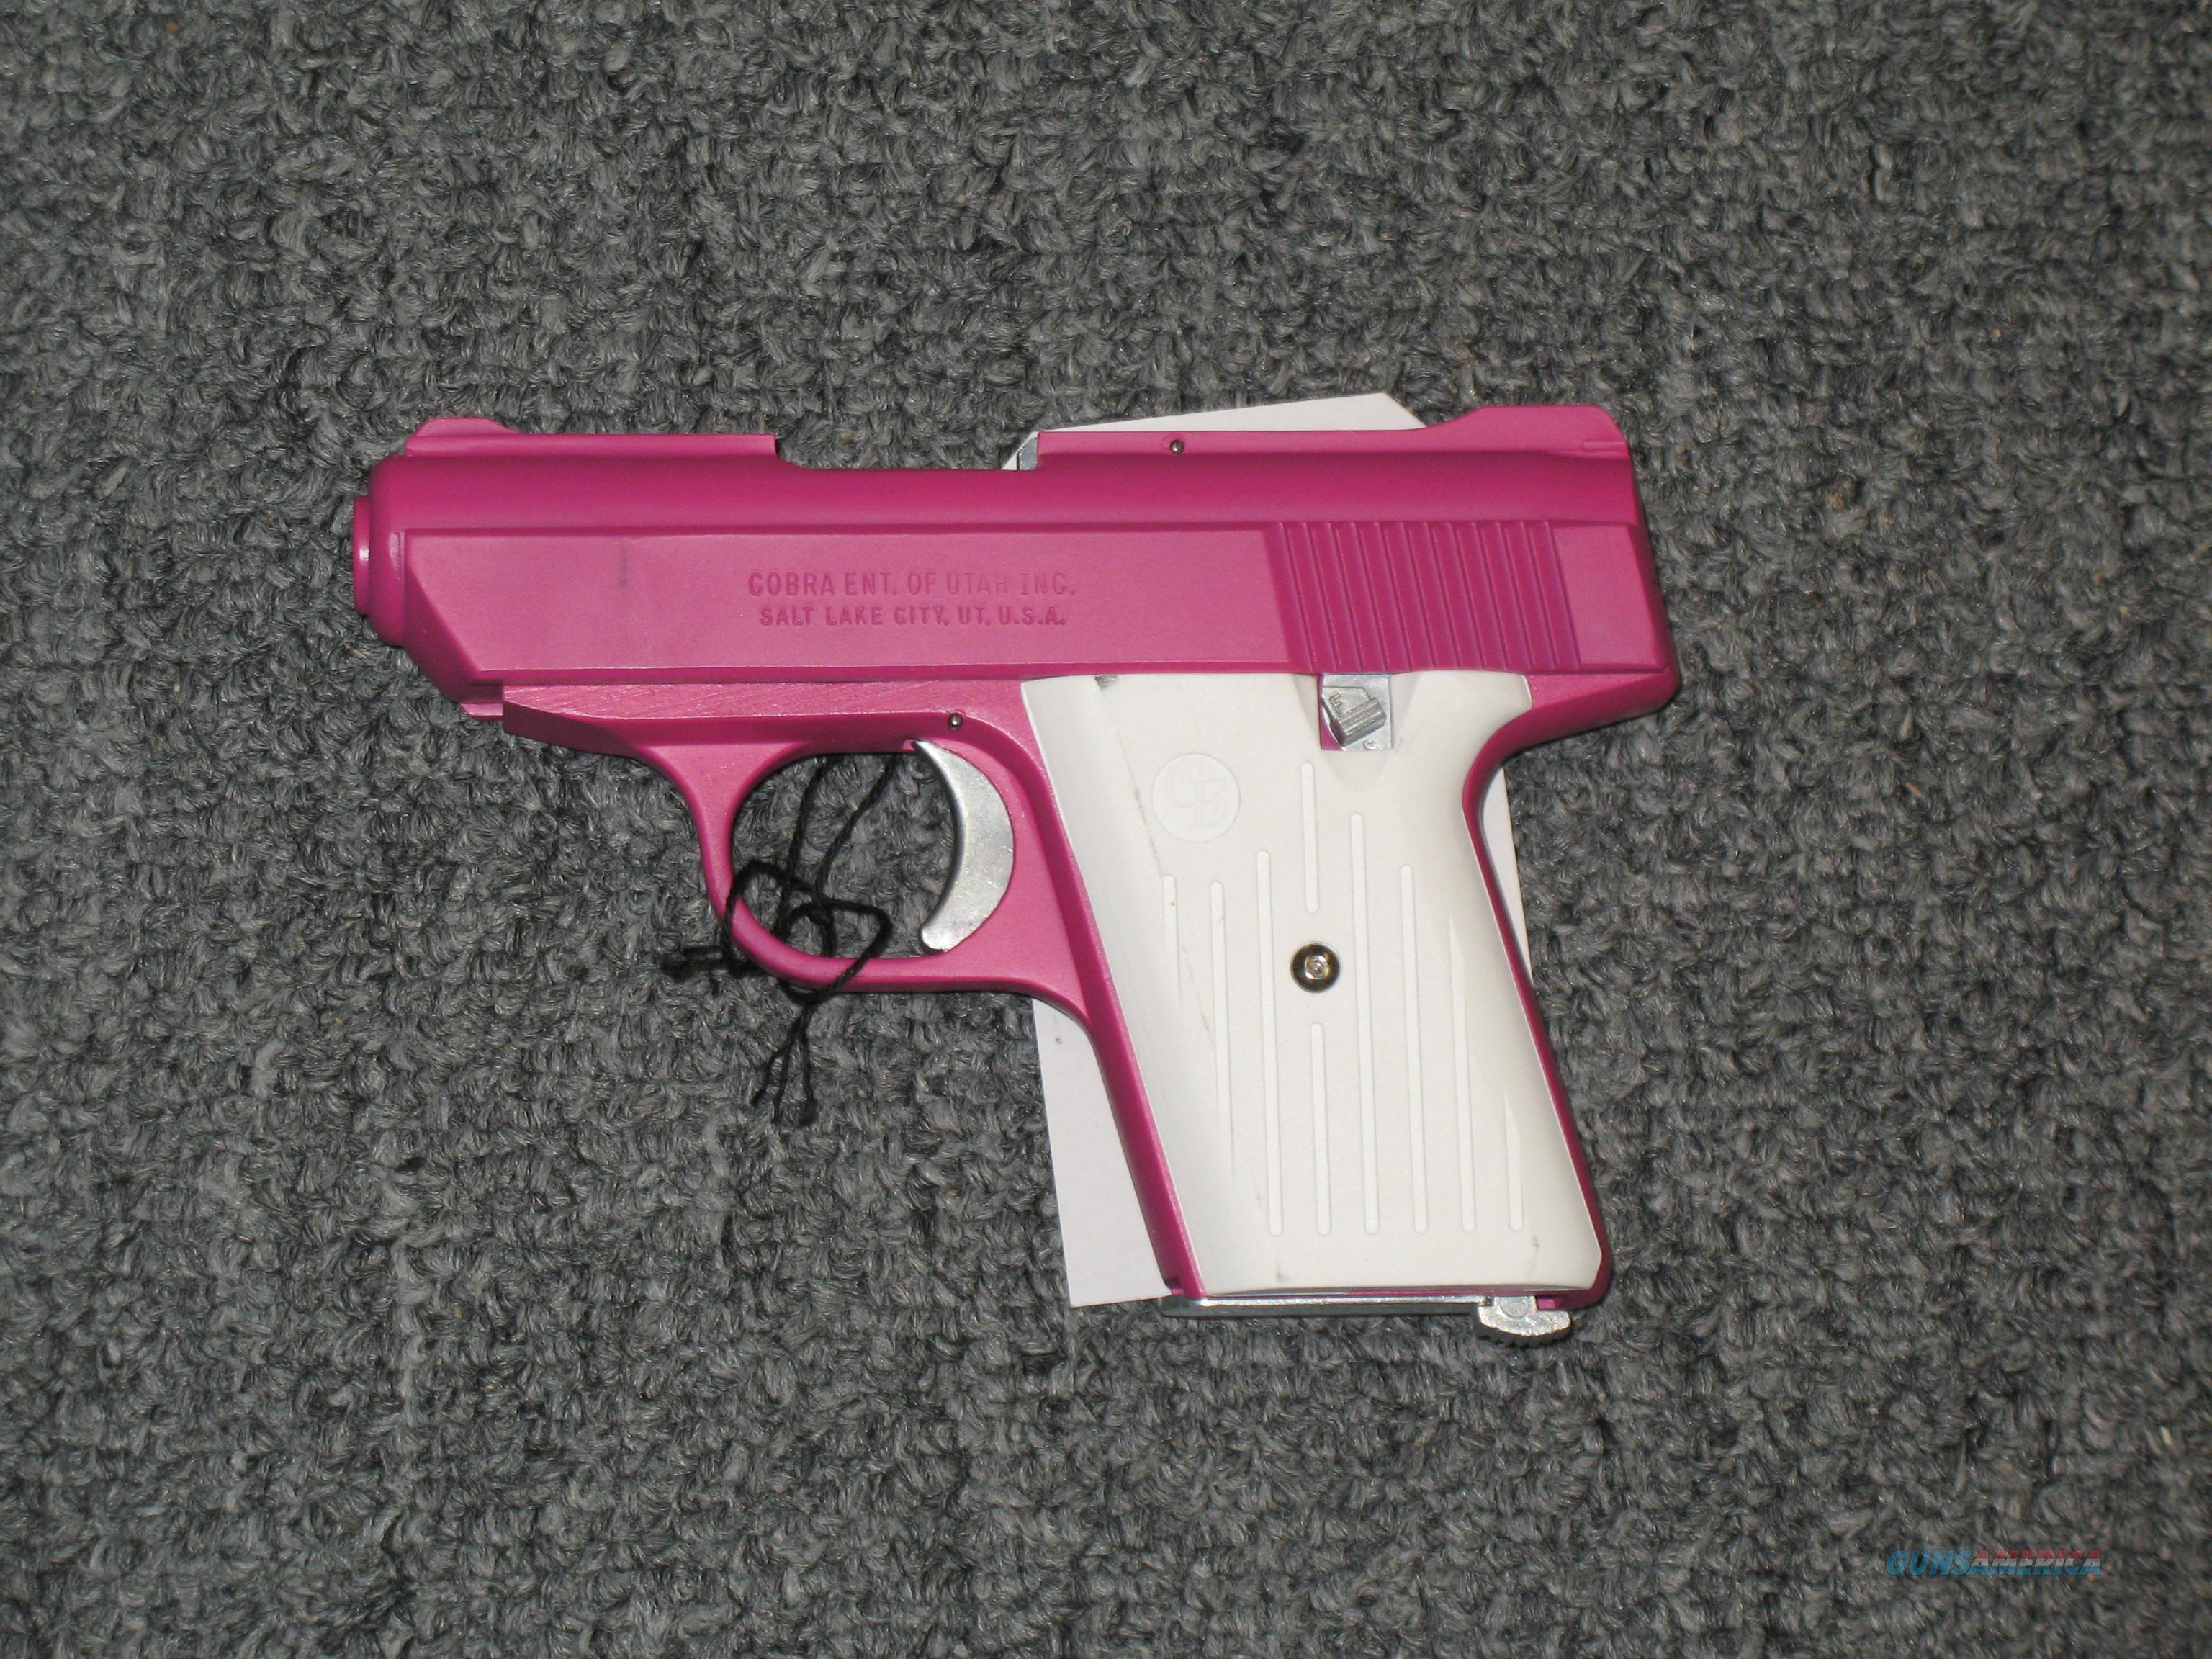 CA380 .380acp pink with white grips  Guns > Pistols > Cobra Derringers